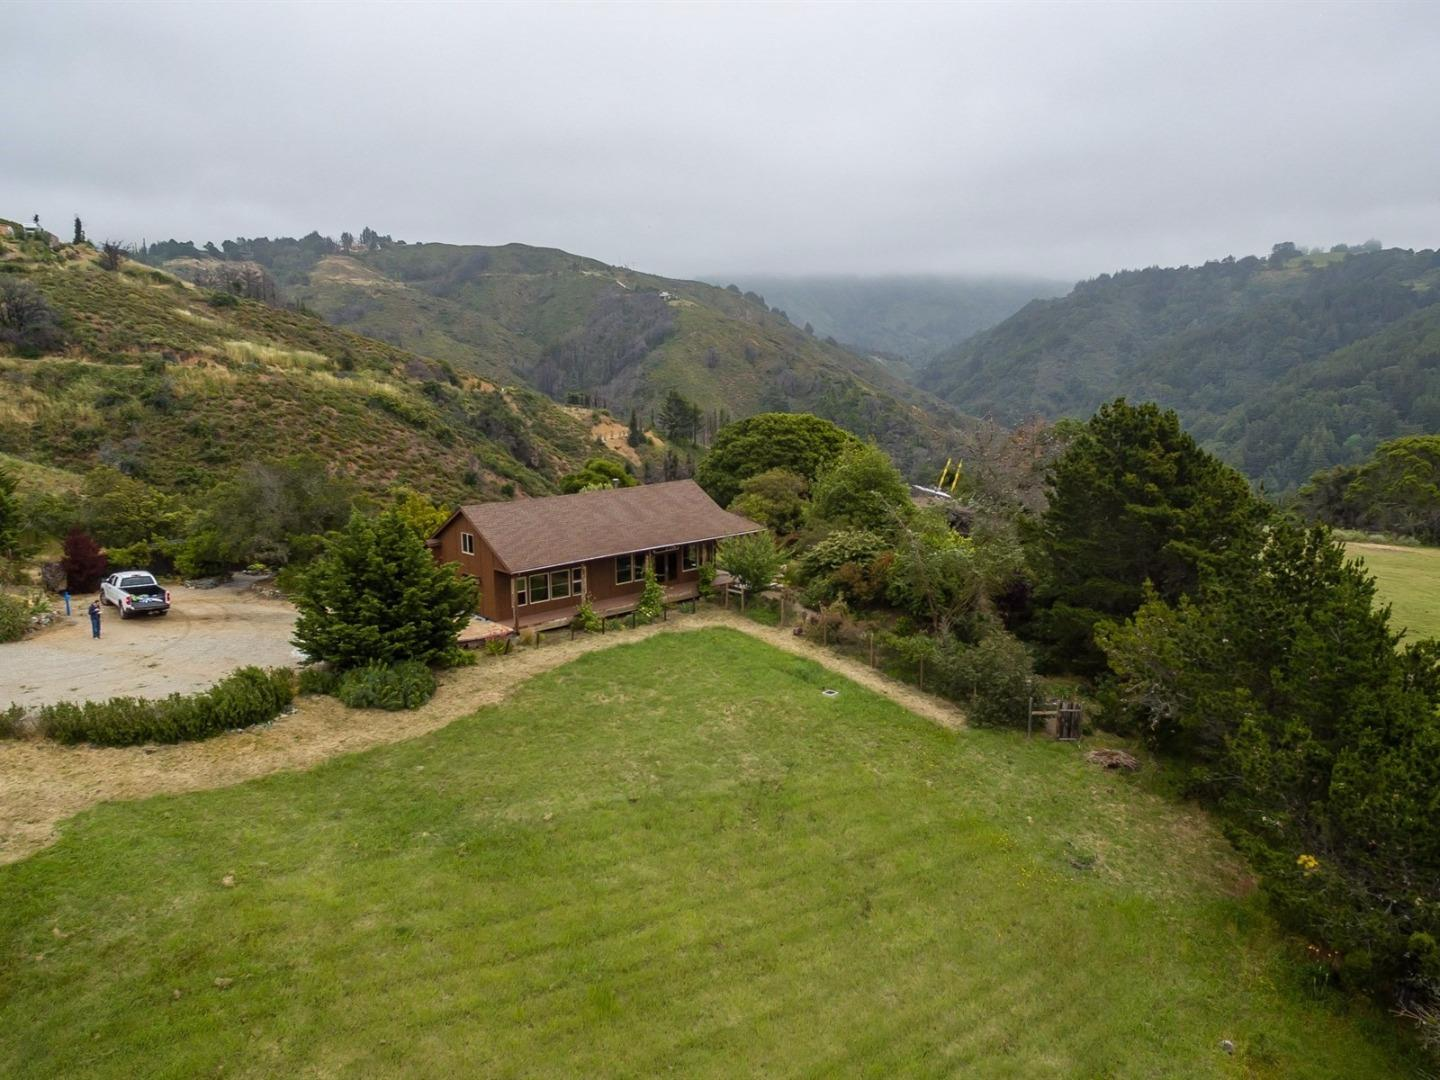 Single Family Home for Sale at 9245 Sycamore Canyon Road Big Sur, California 93920 United States